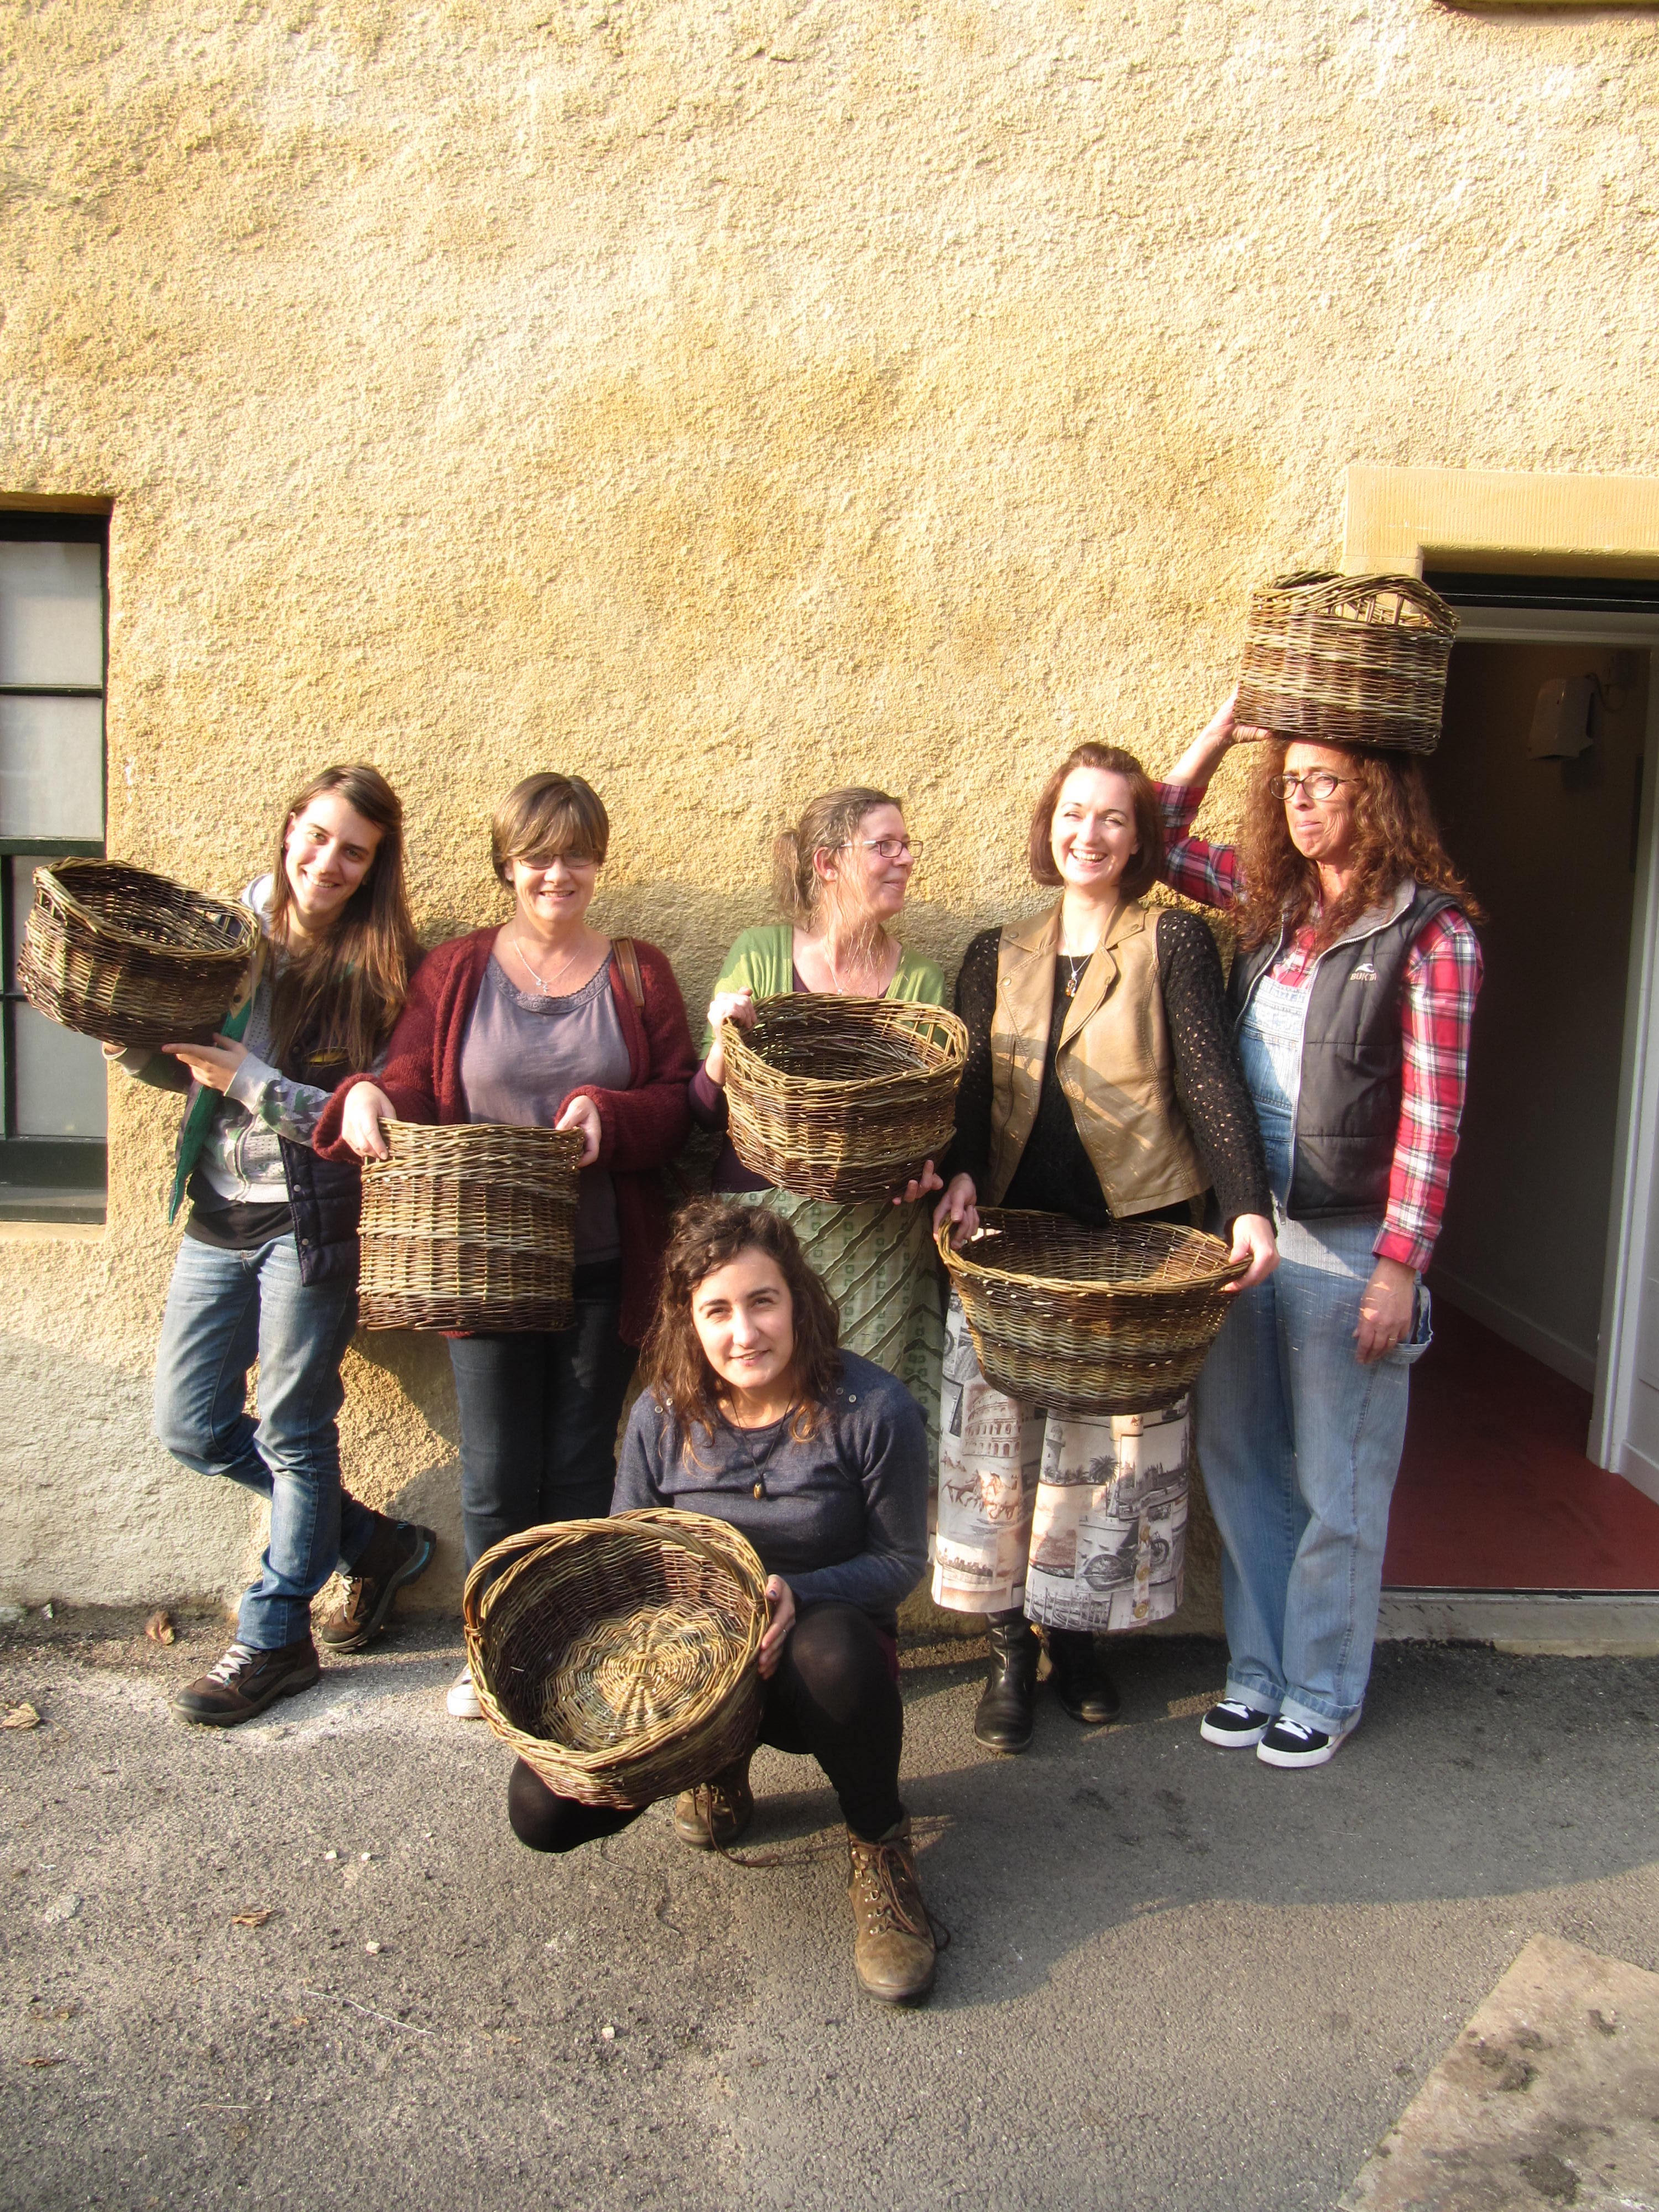 Basketmaking Course for Beginners and Improvers - Two Days